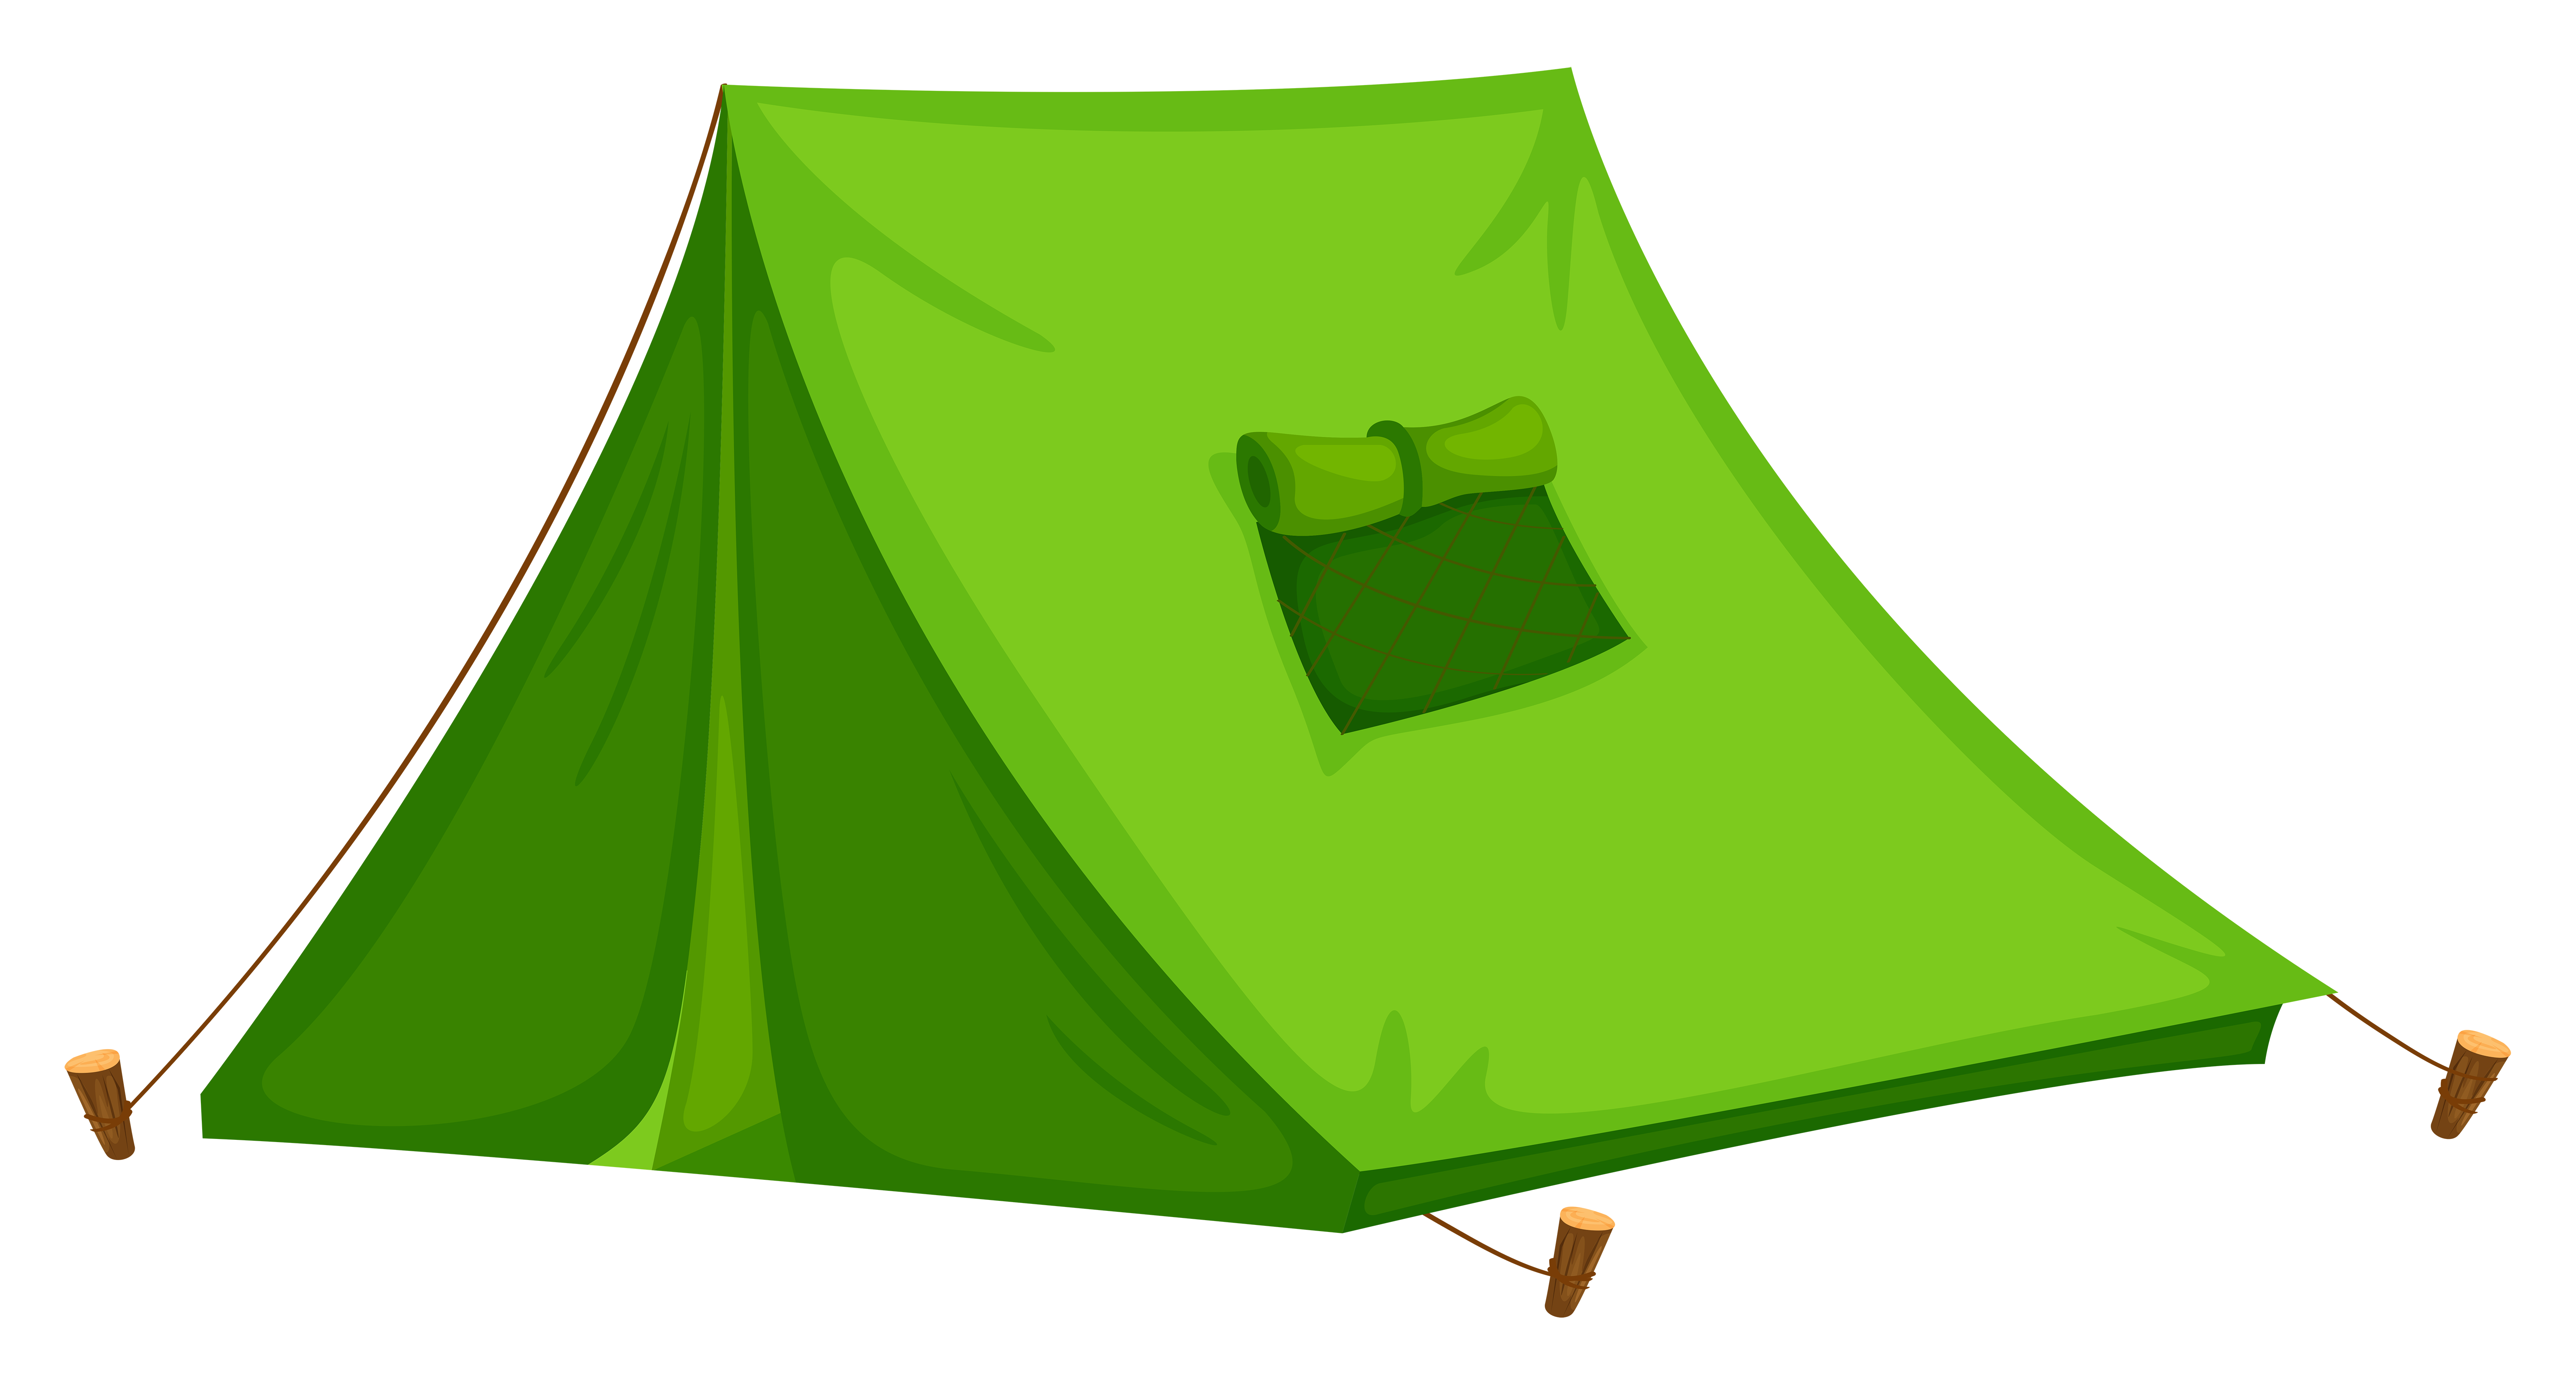 Camp vector desert tent. Green png clipart picture